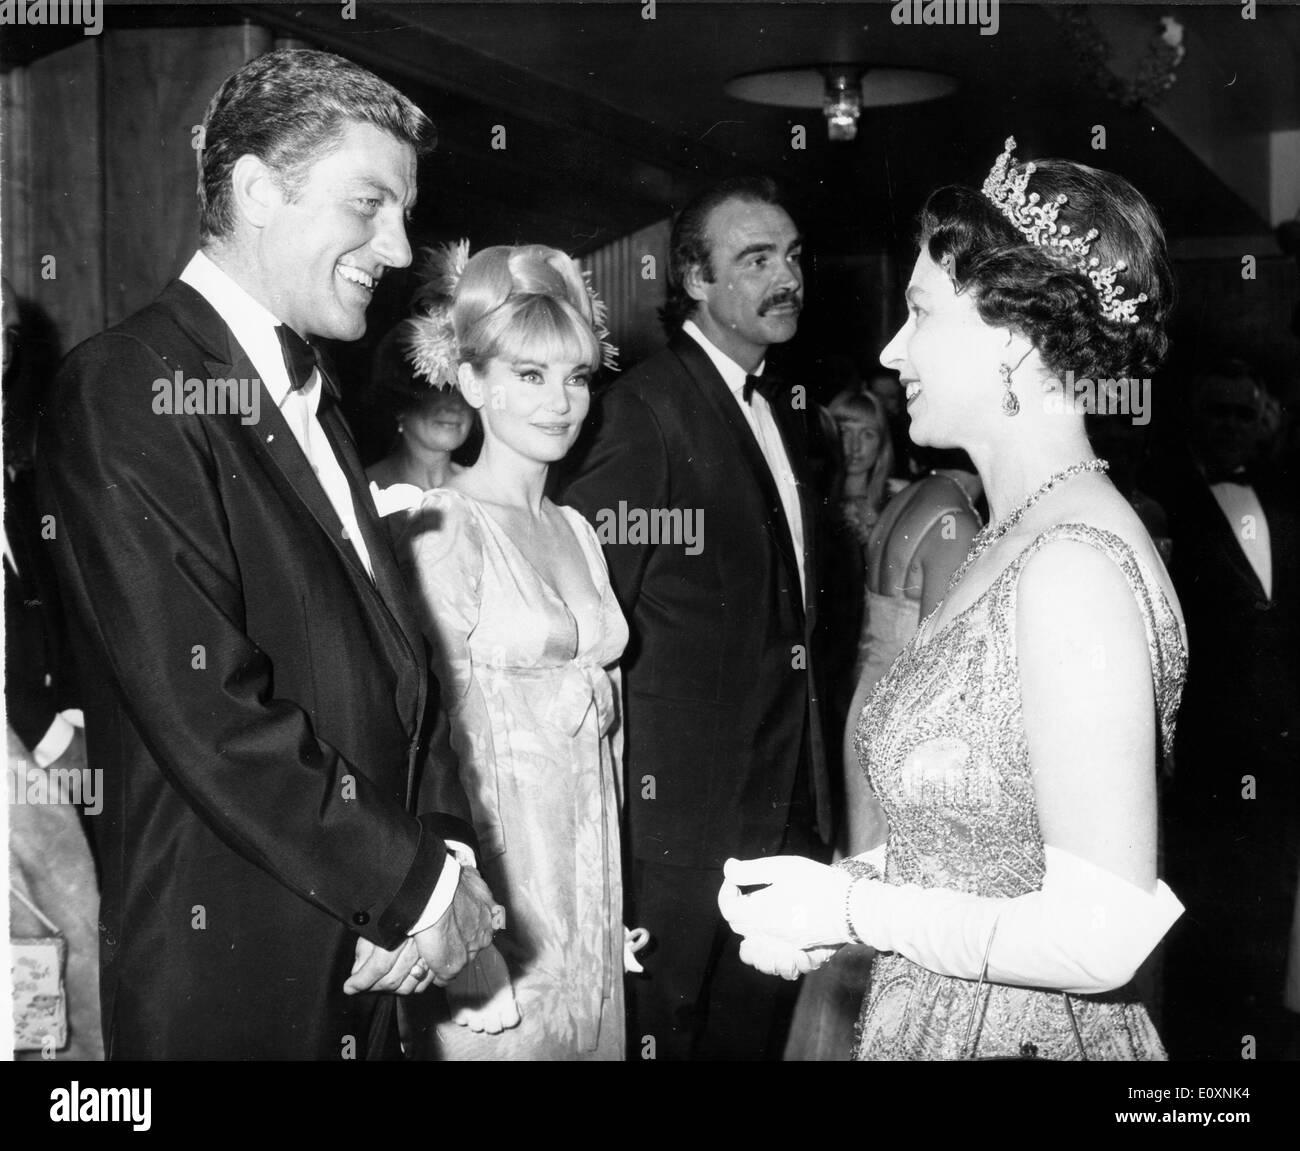 Actor Dick Van Dyke meets the Queen at a World Charity Premiere